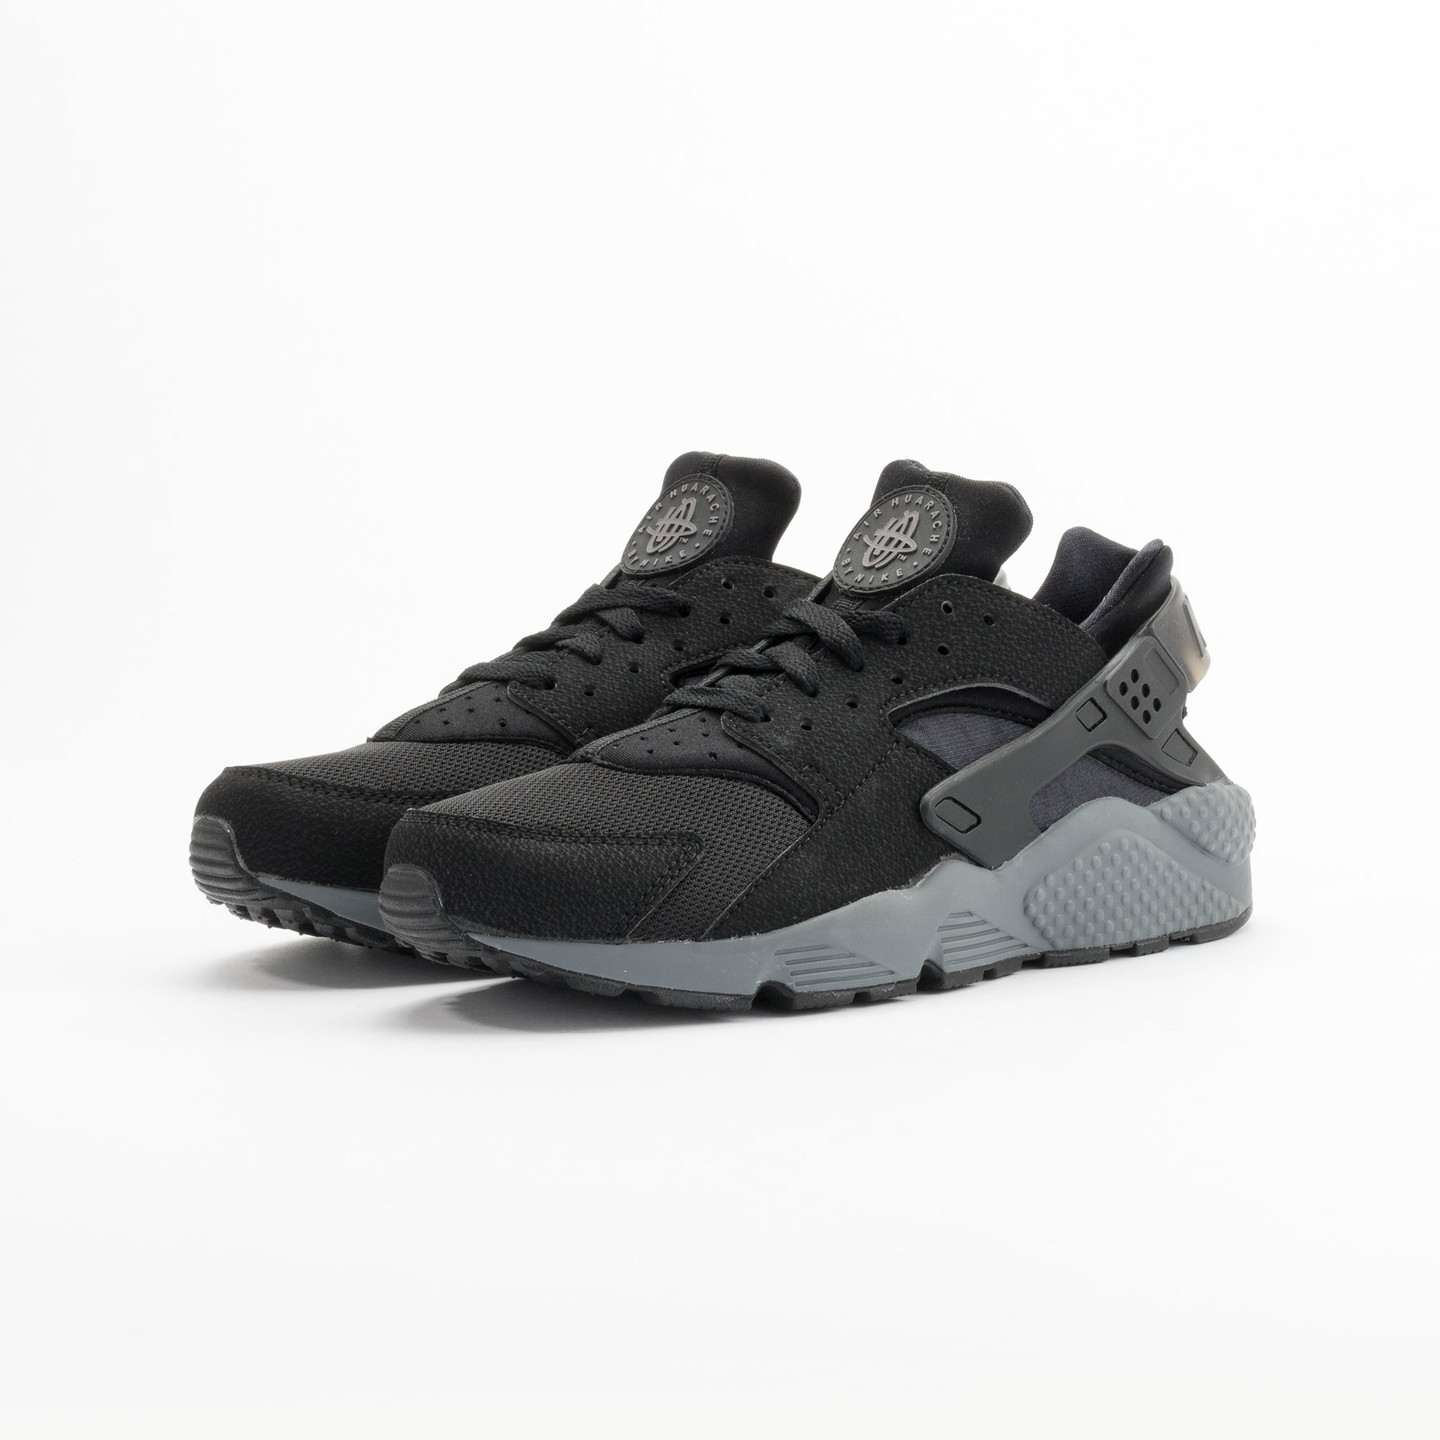 Nike Air Huarache Black / Dark Grey 318429-010-46